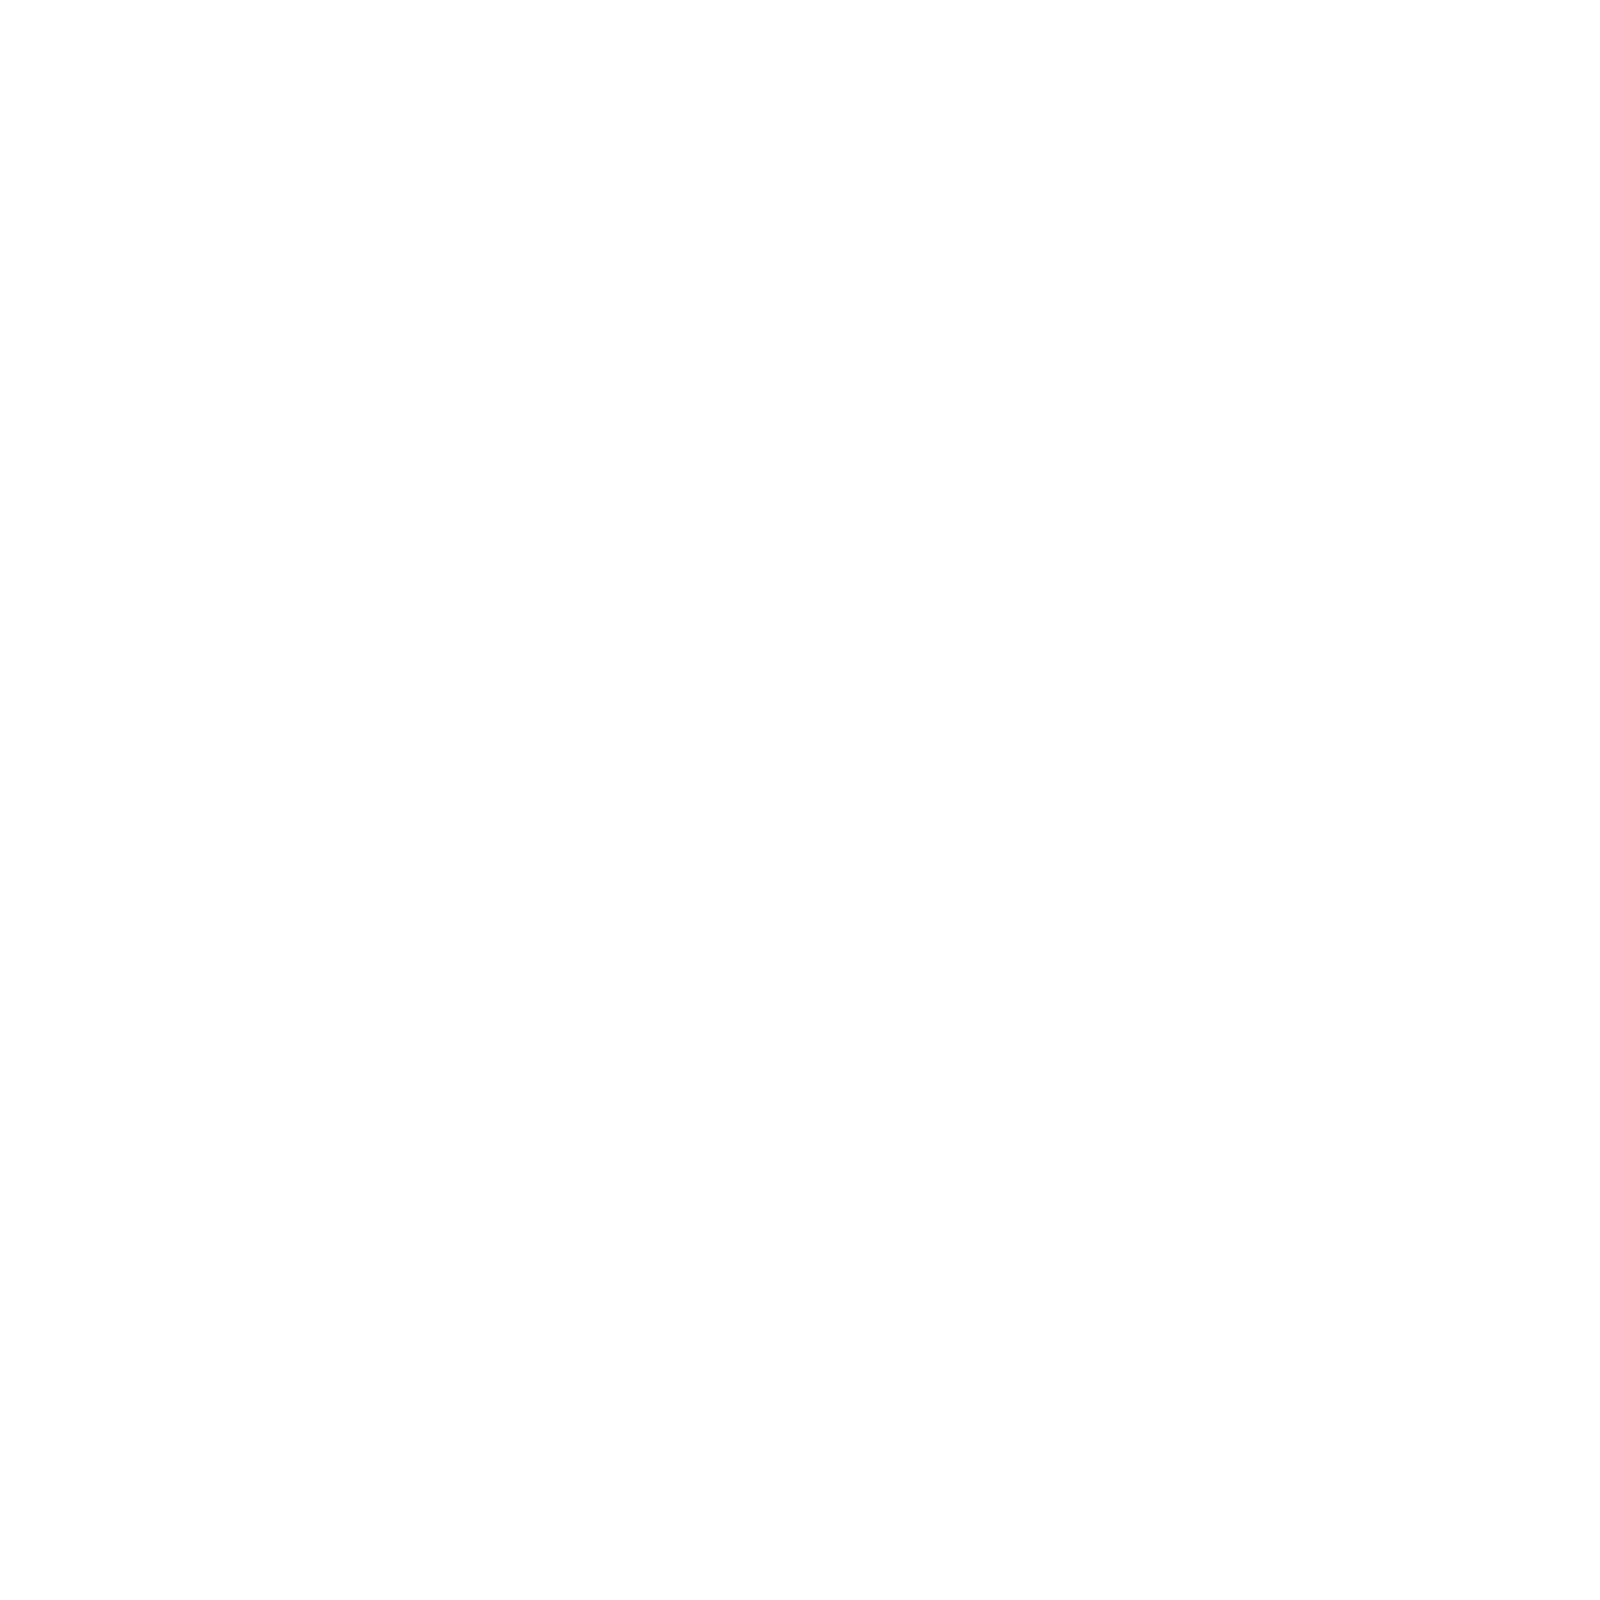 TravelTyme Pilgrimages